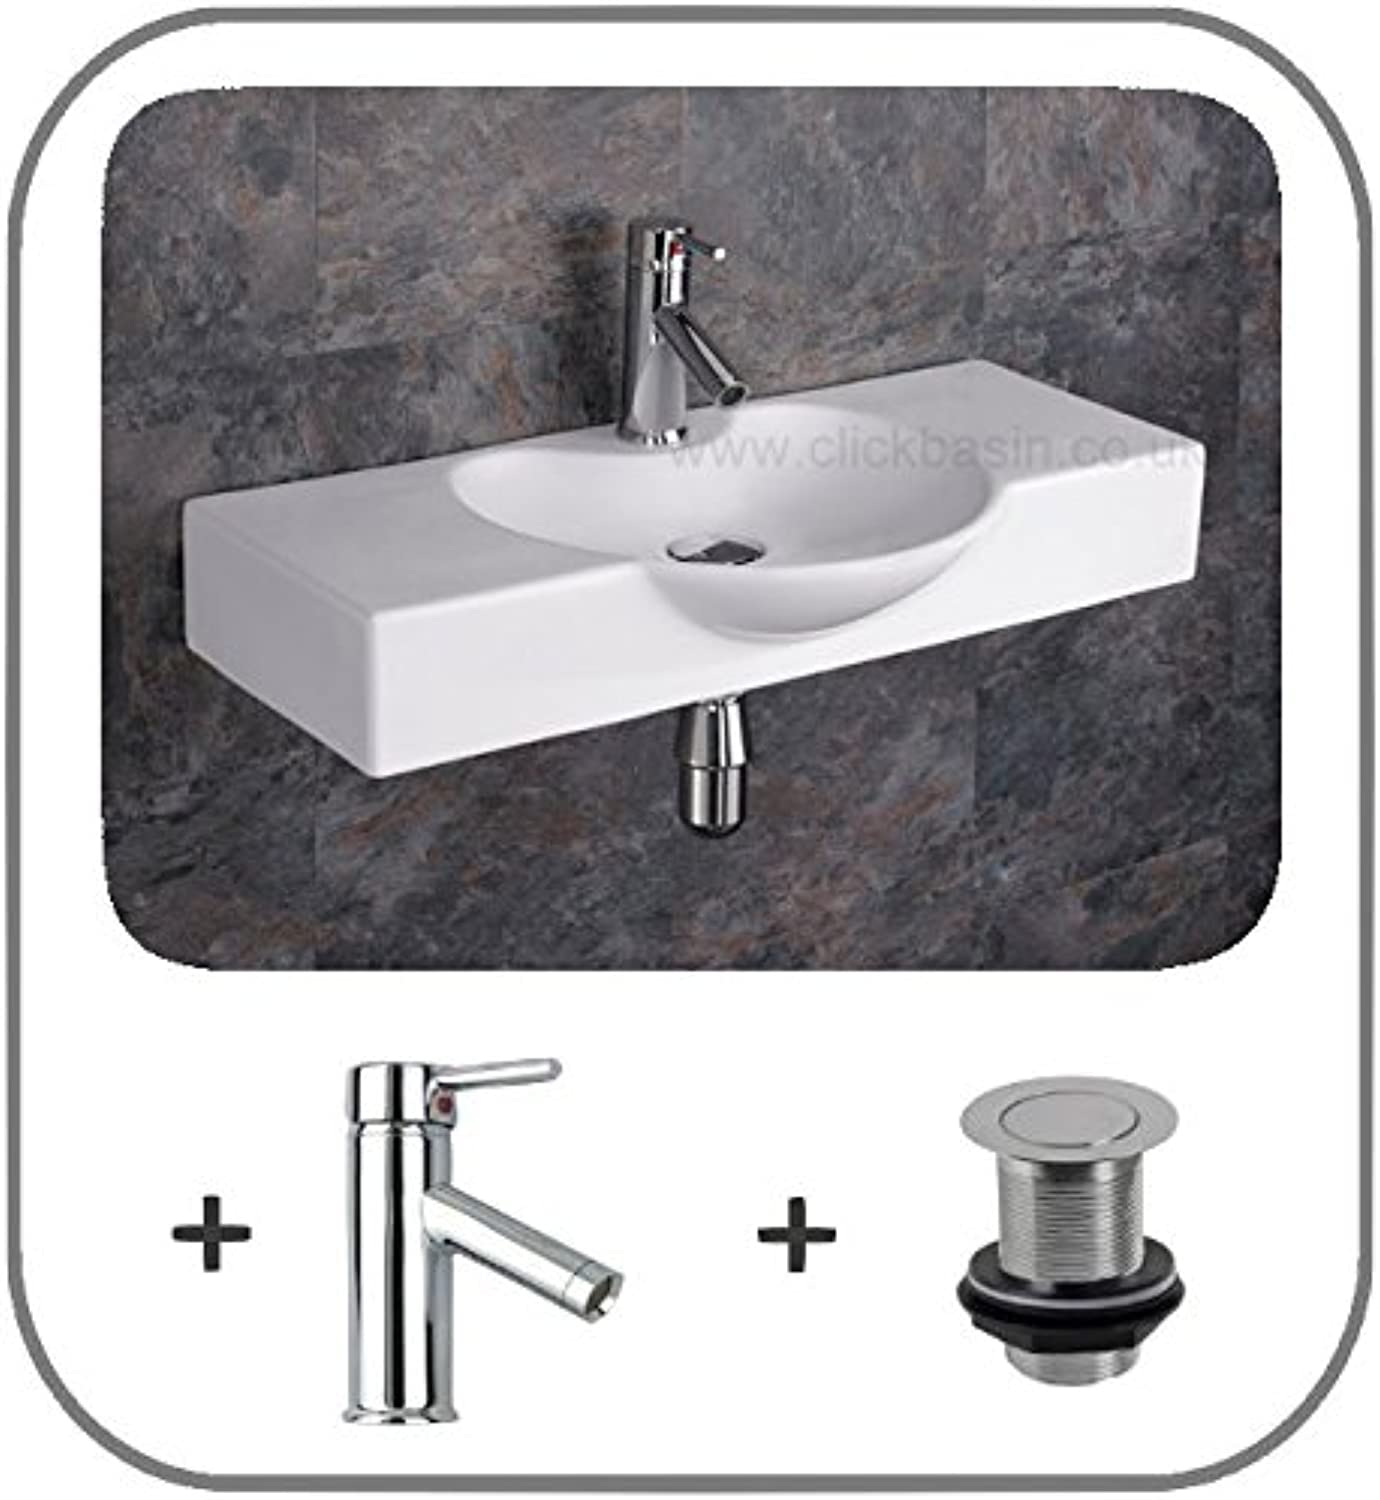 Clickbasin Aprilia Wall Mounted 70.5cm Wide Shaped Sink With Tap And Waste - Delivered Free